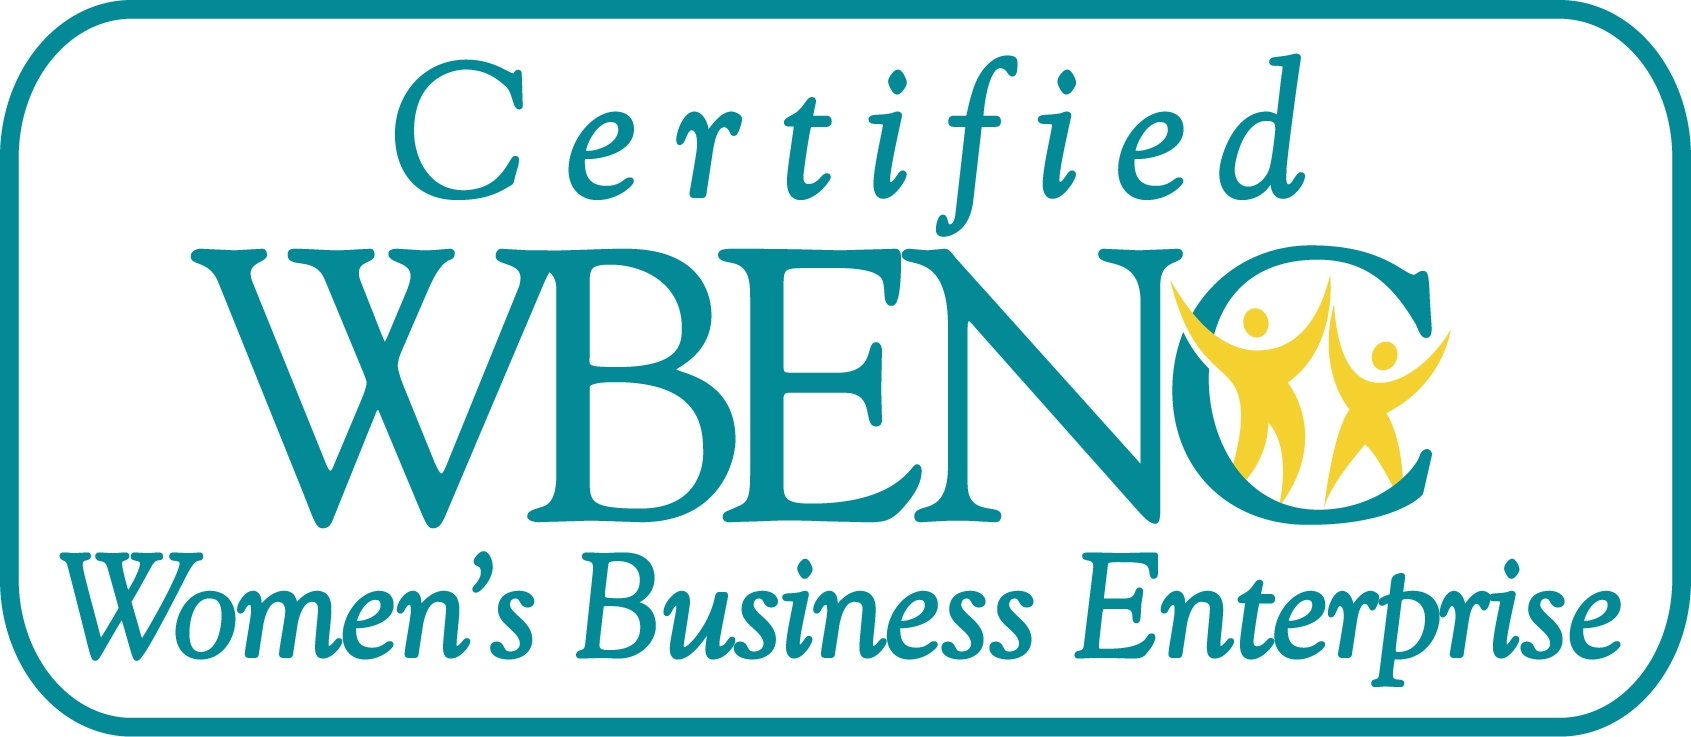 WBENC - Women's Business Enterprise National Council